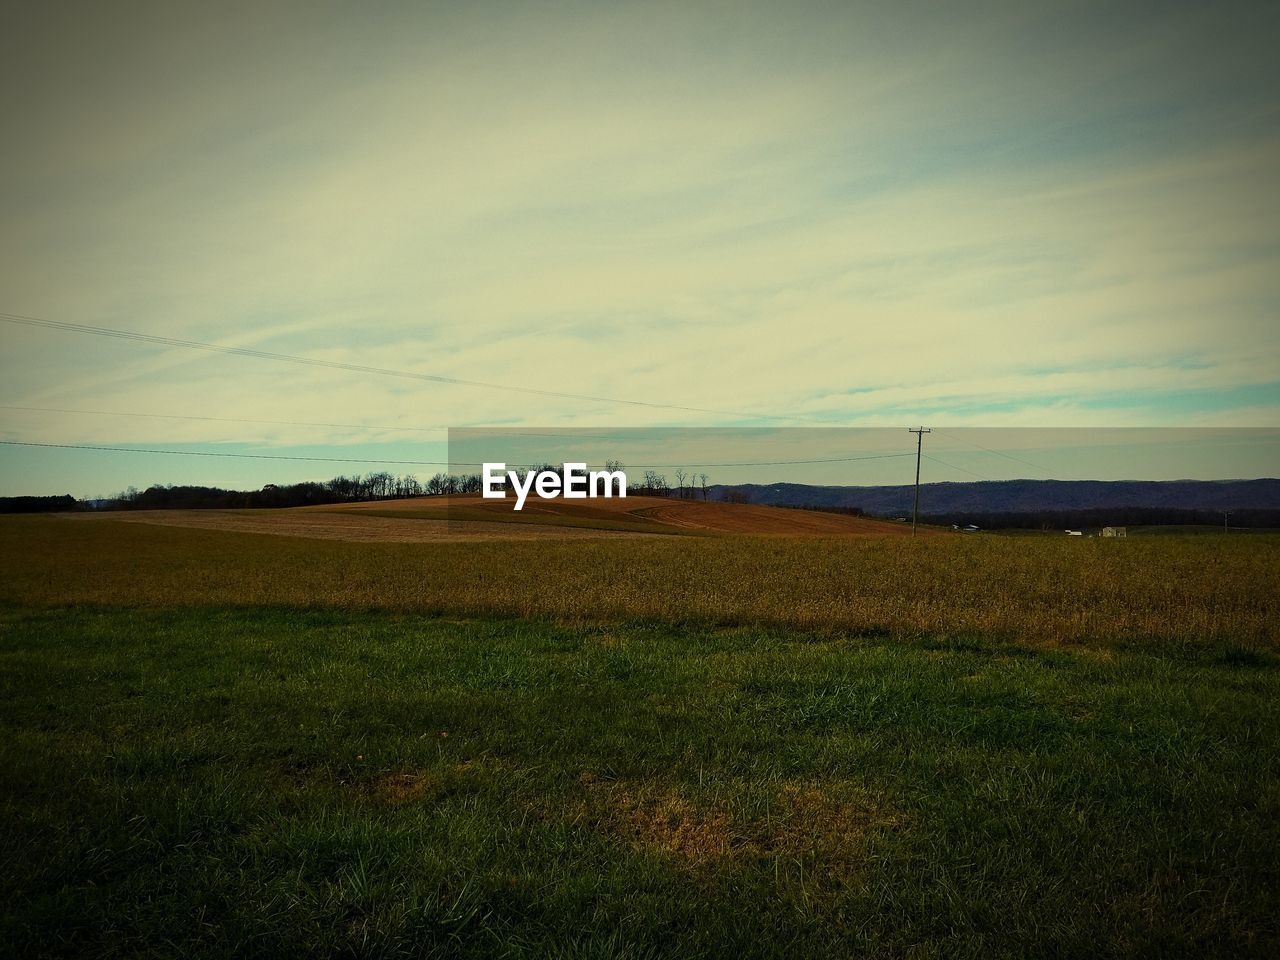 field, landscape, tranquility, nature, beauty in nature, tranquil scene, scenics, grass, sky, no people, rural scene, tree, agriculture, day, outdoors